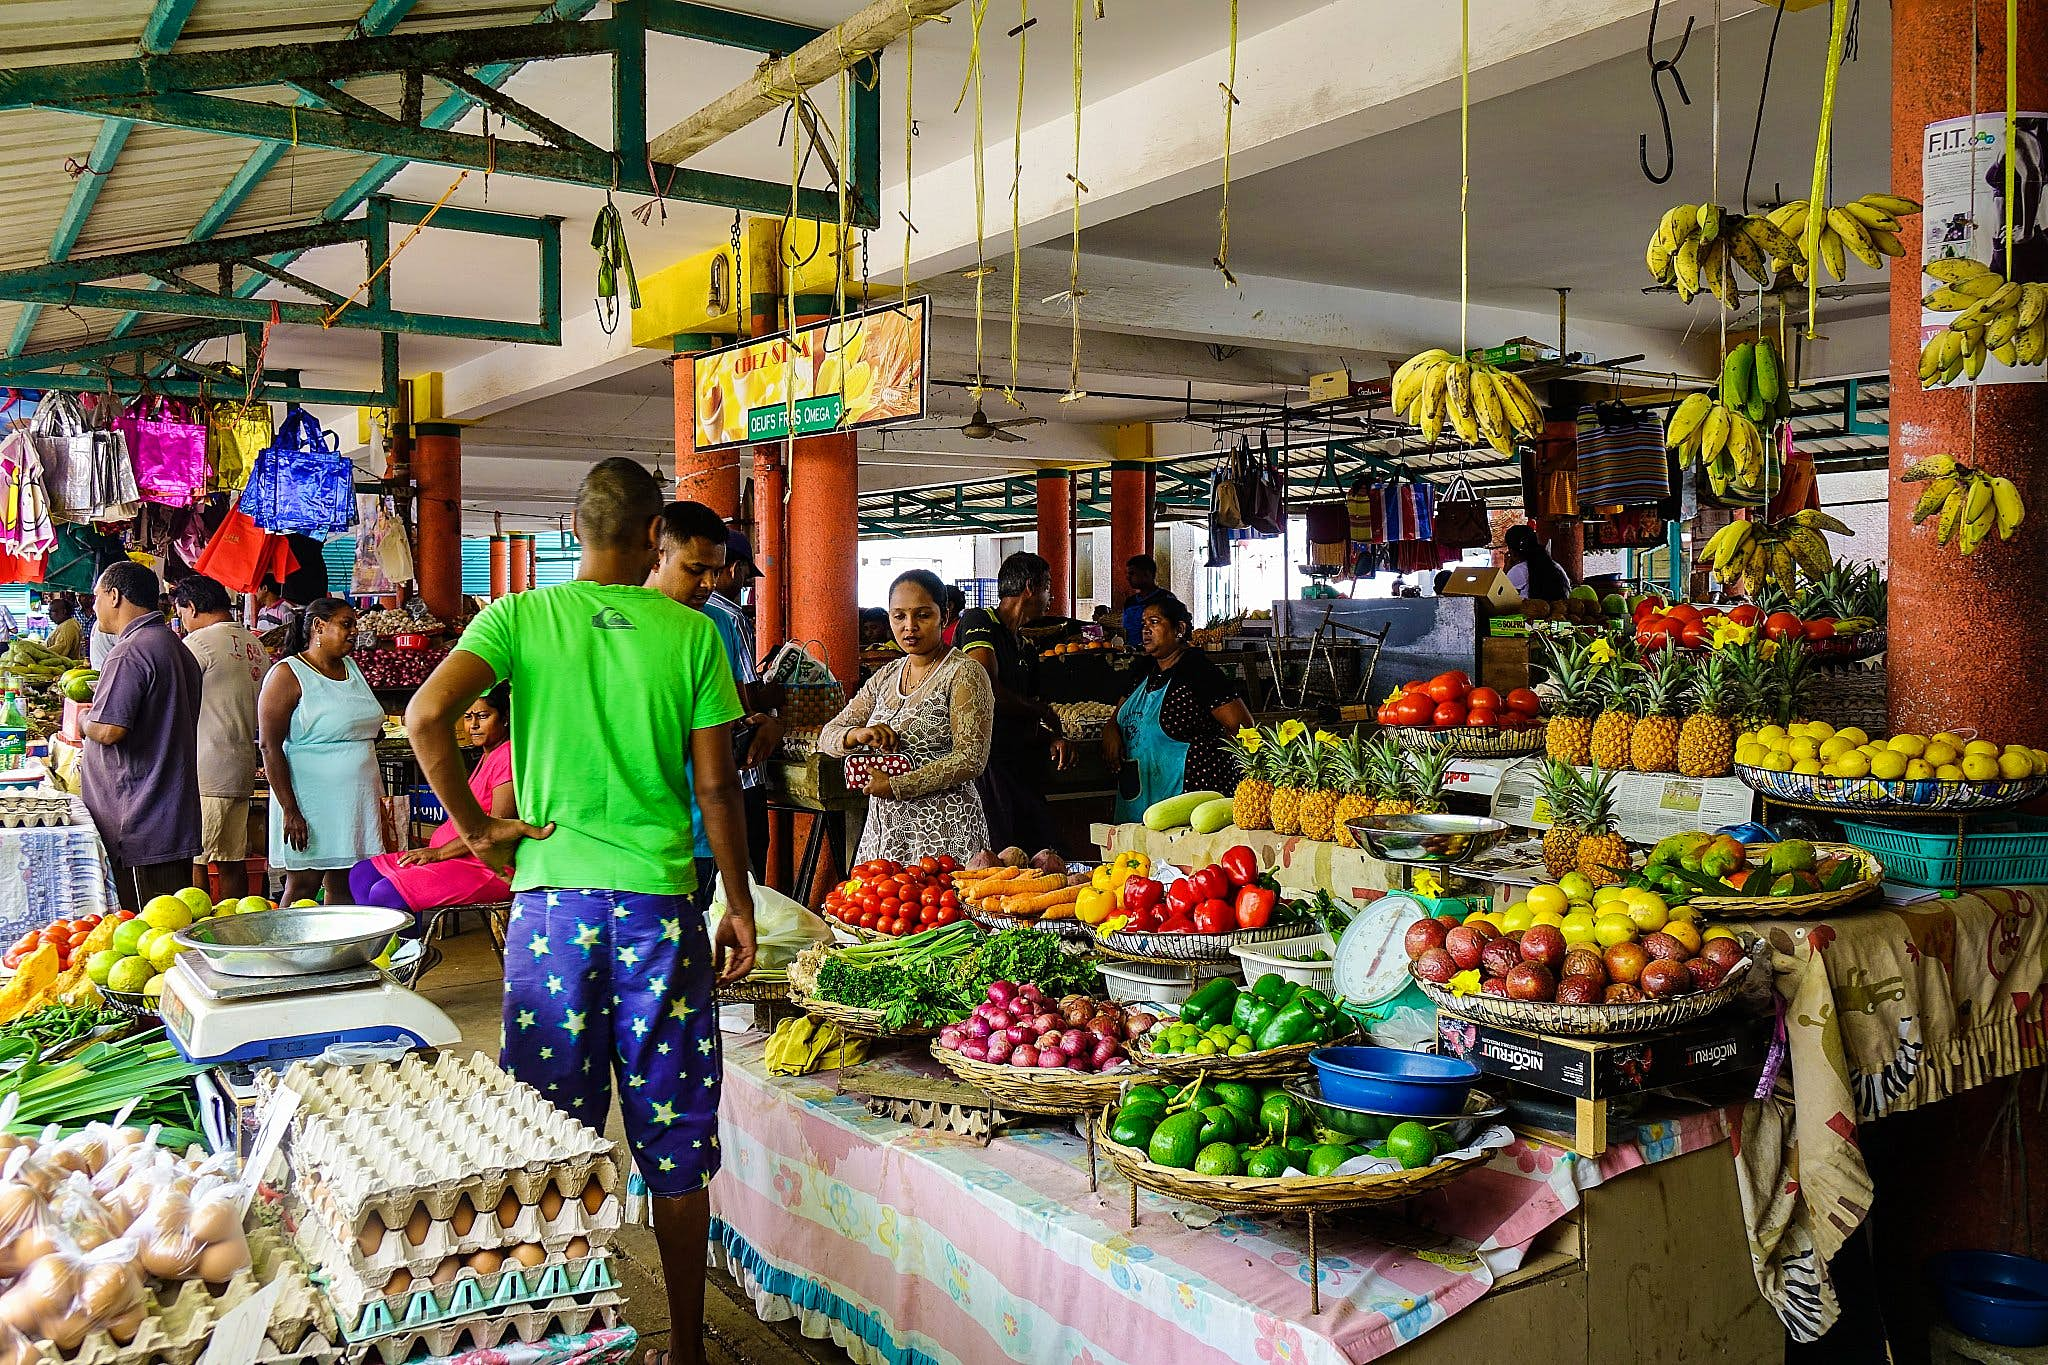 A Mauritius market, with people by a stall laden with colourful fresh produce.